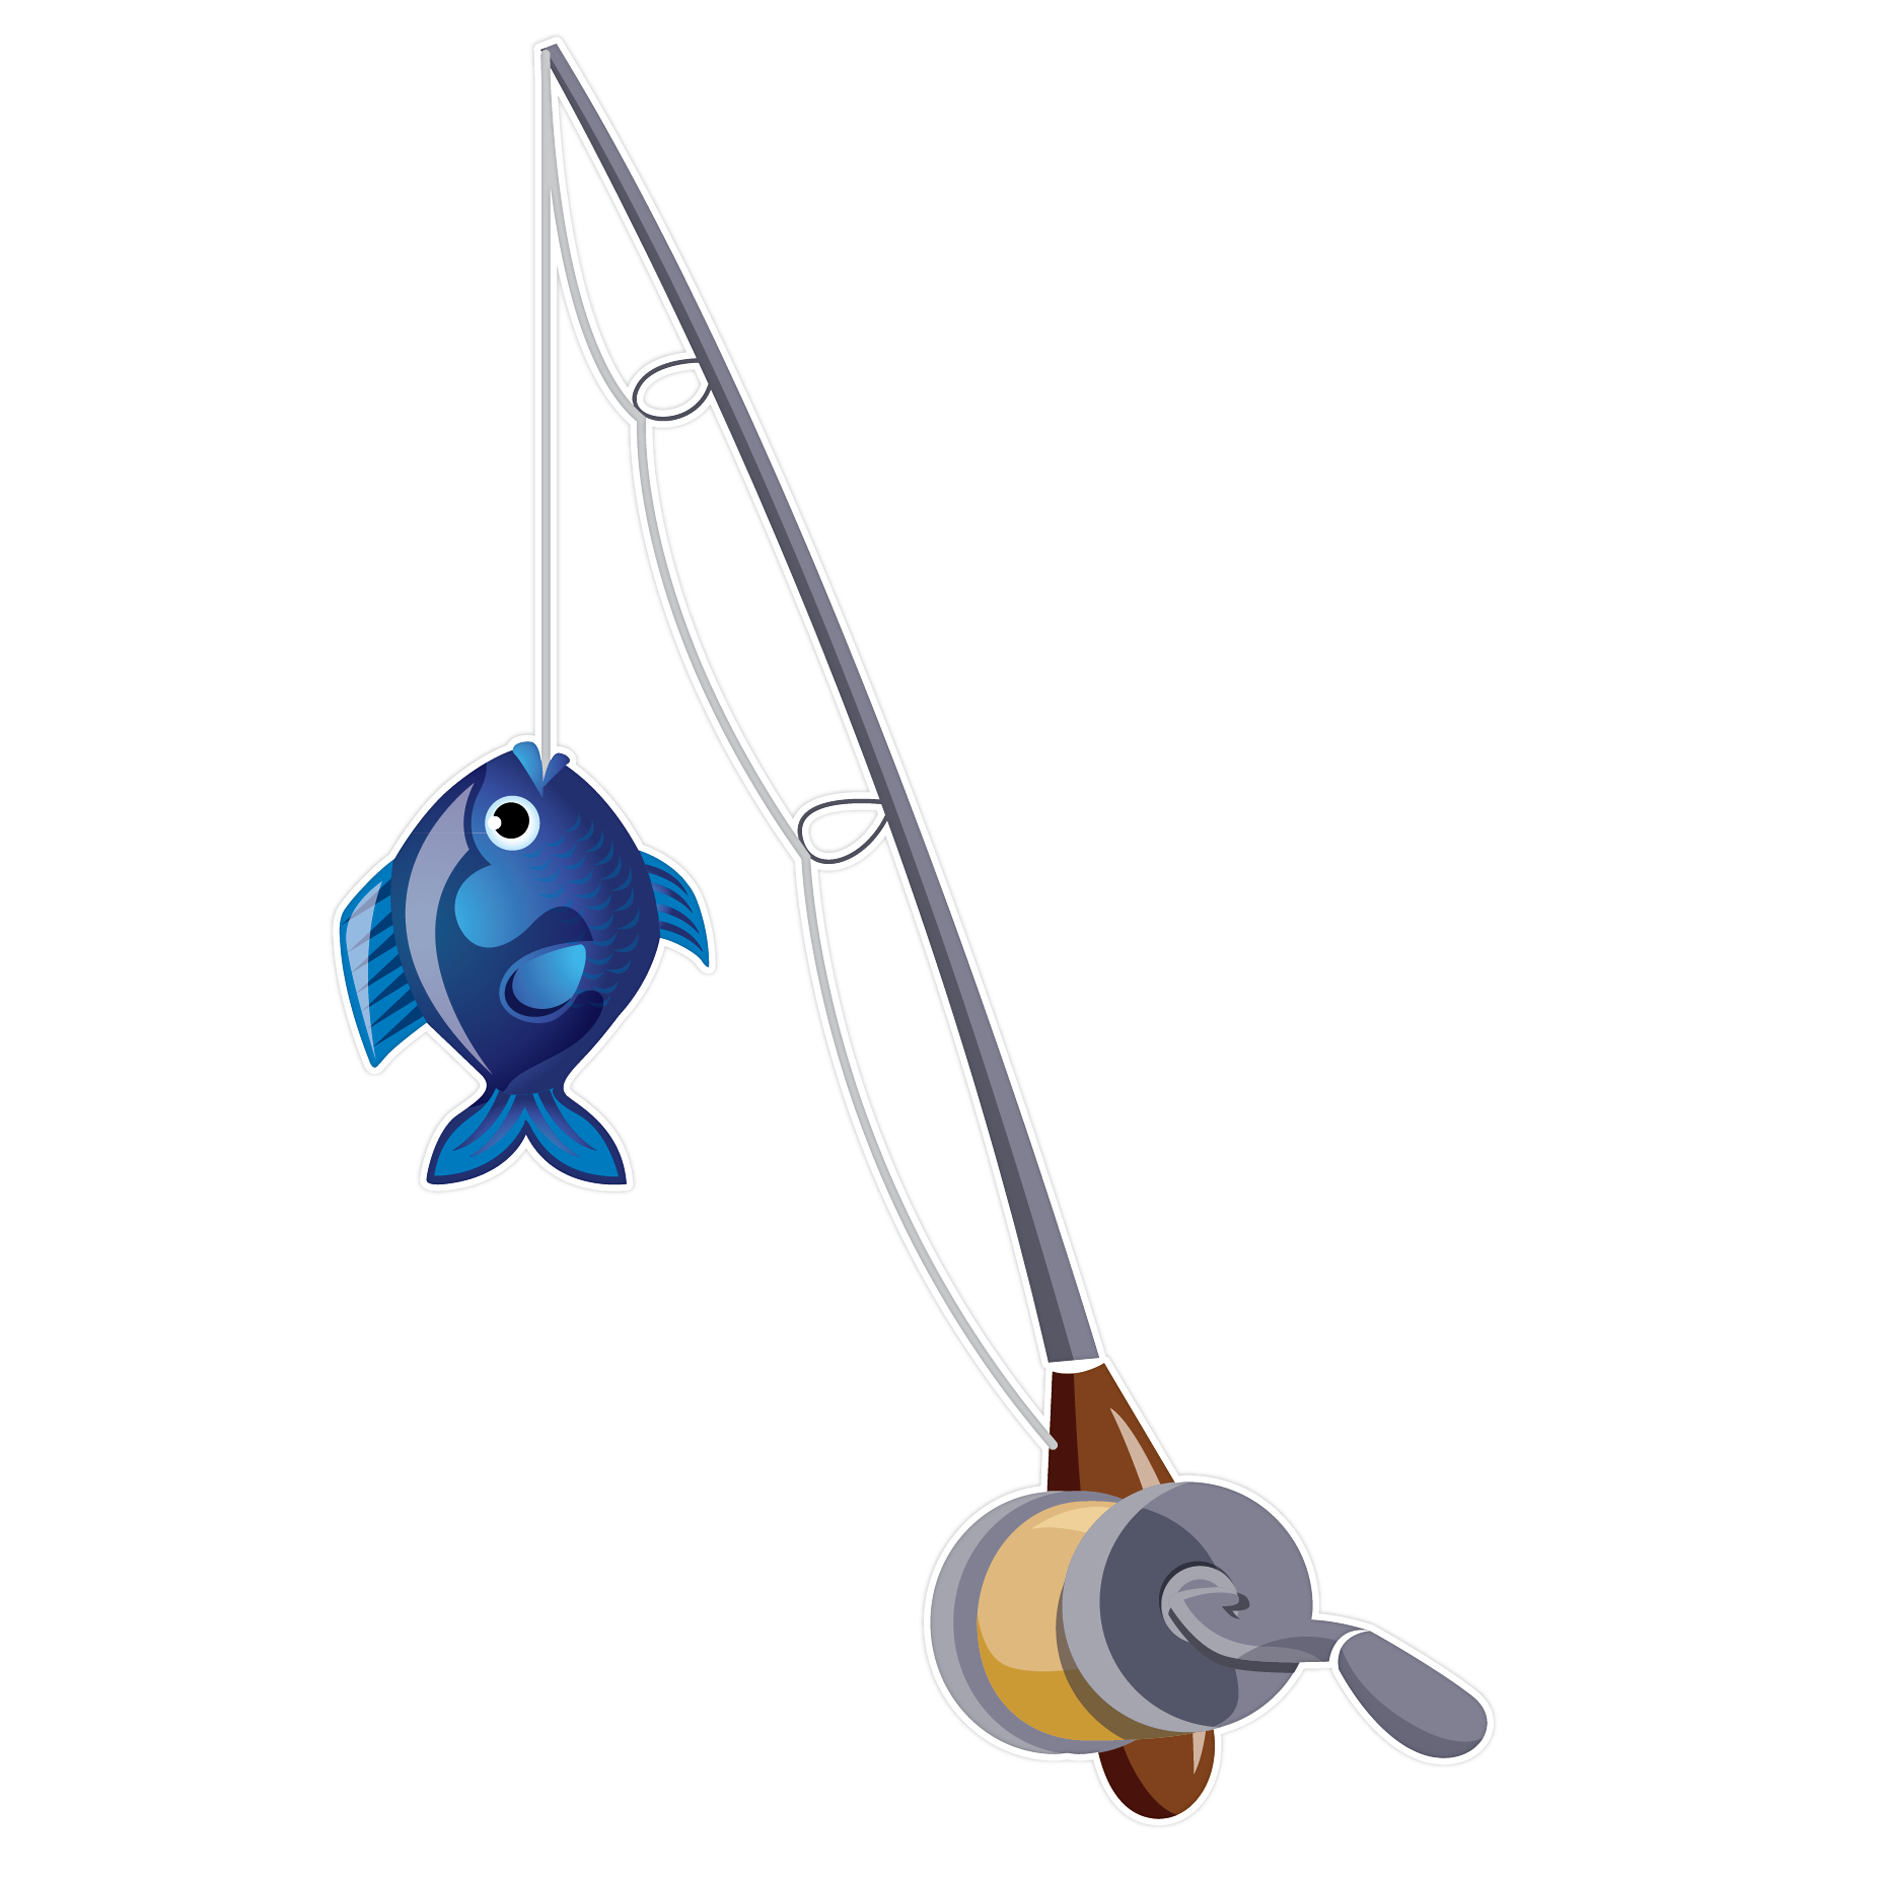 Fishing rod clipart clipground for Fishing rod clips